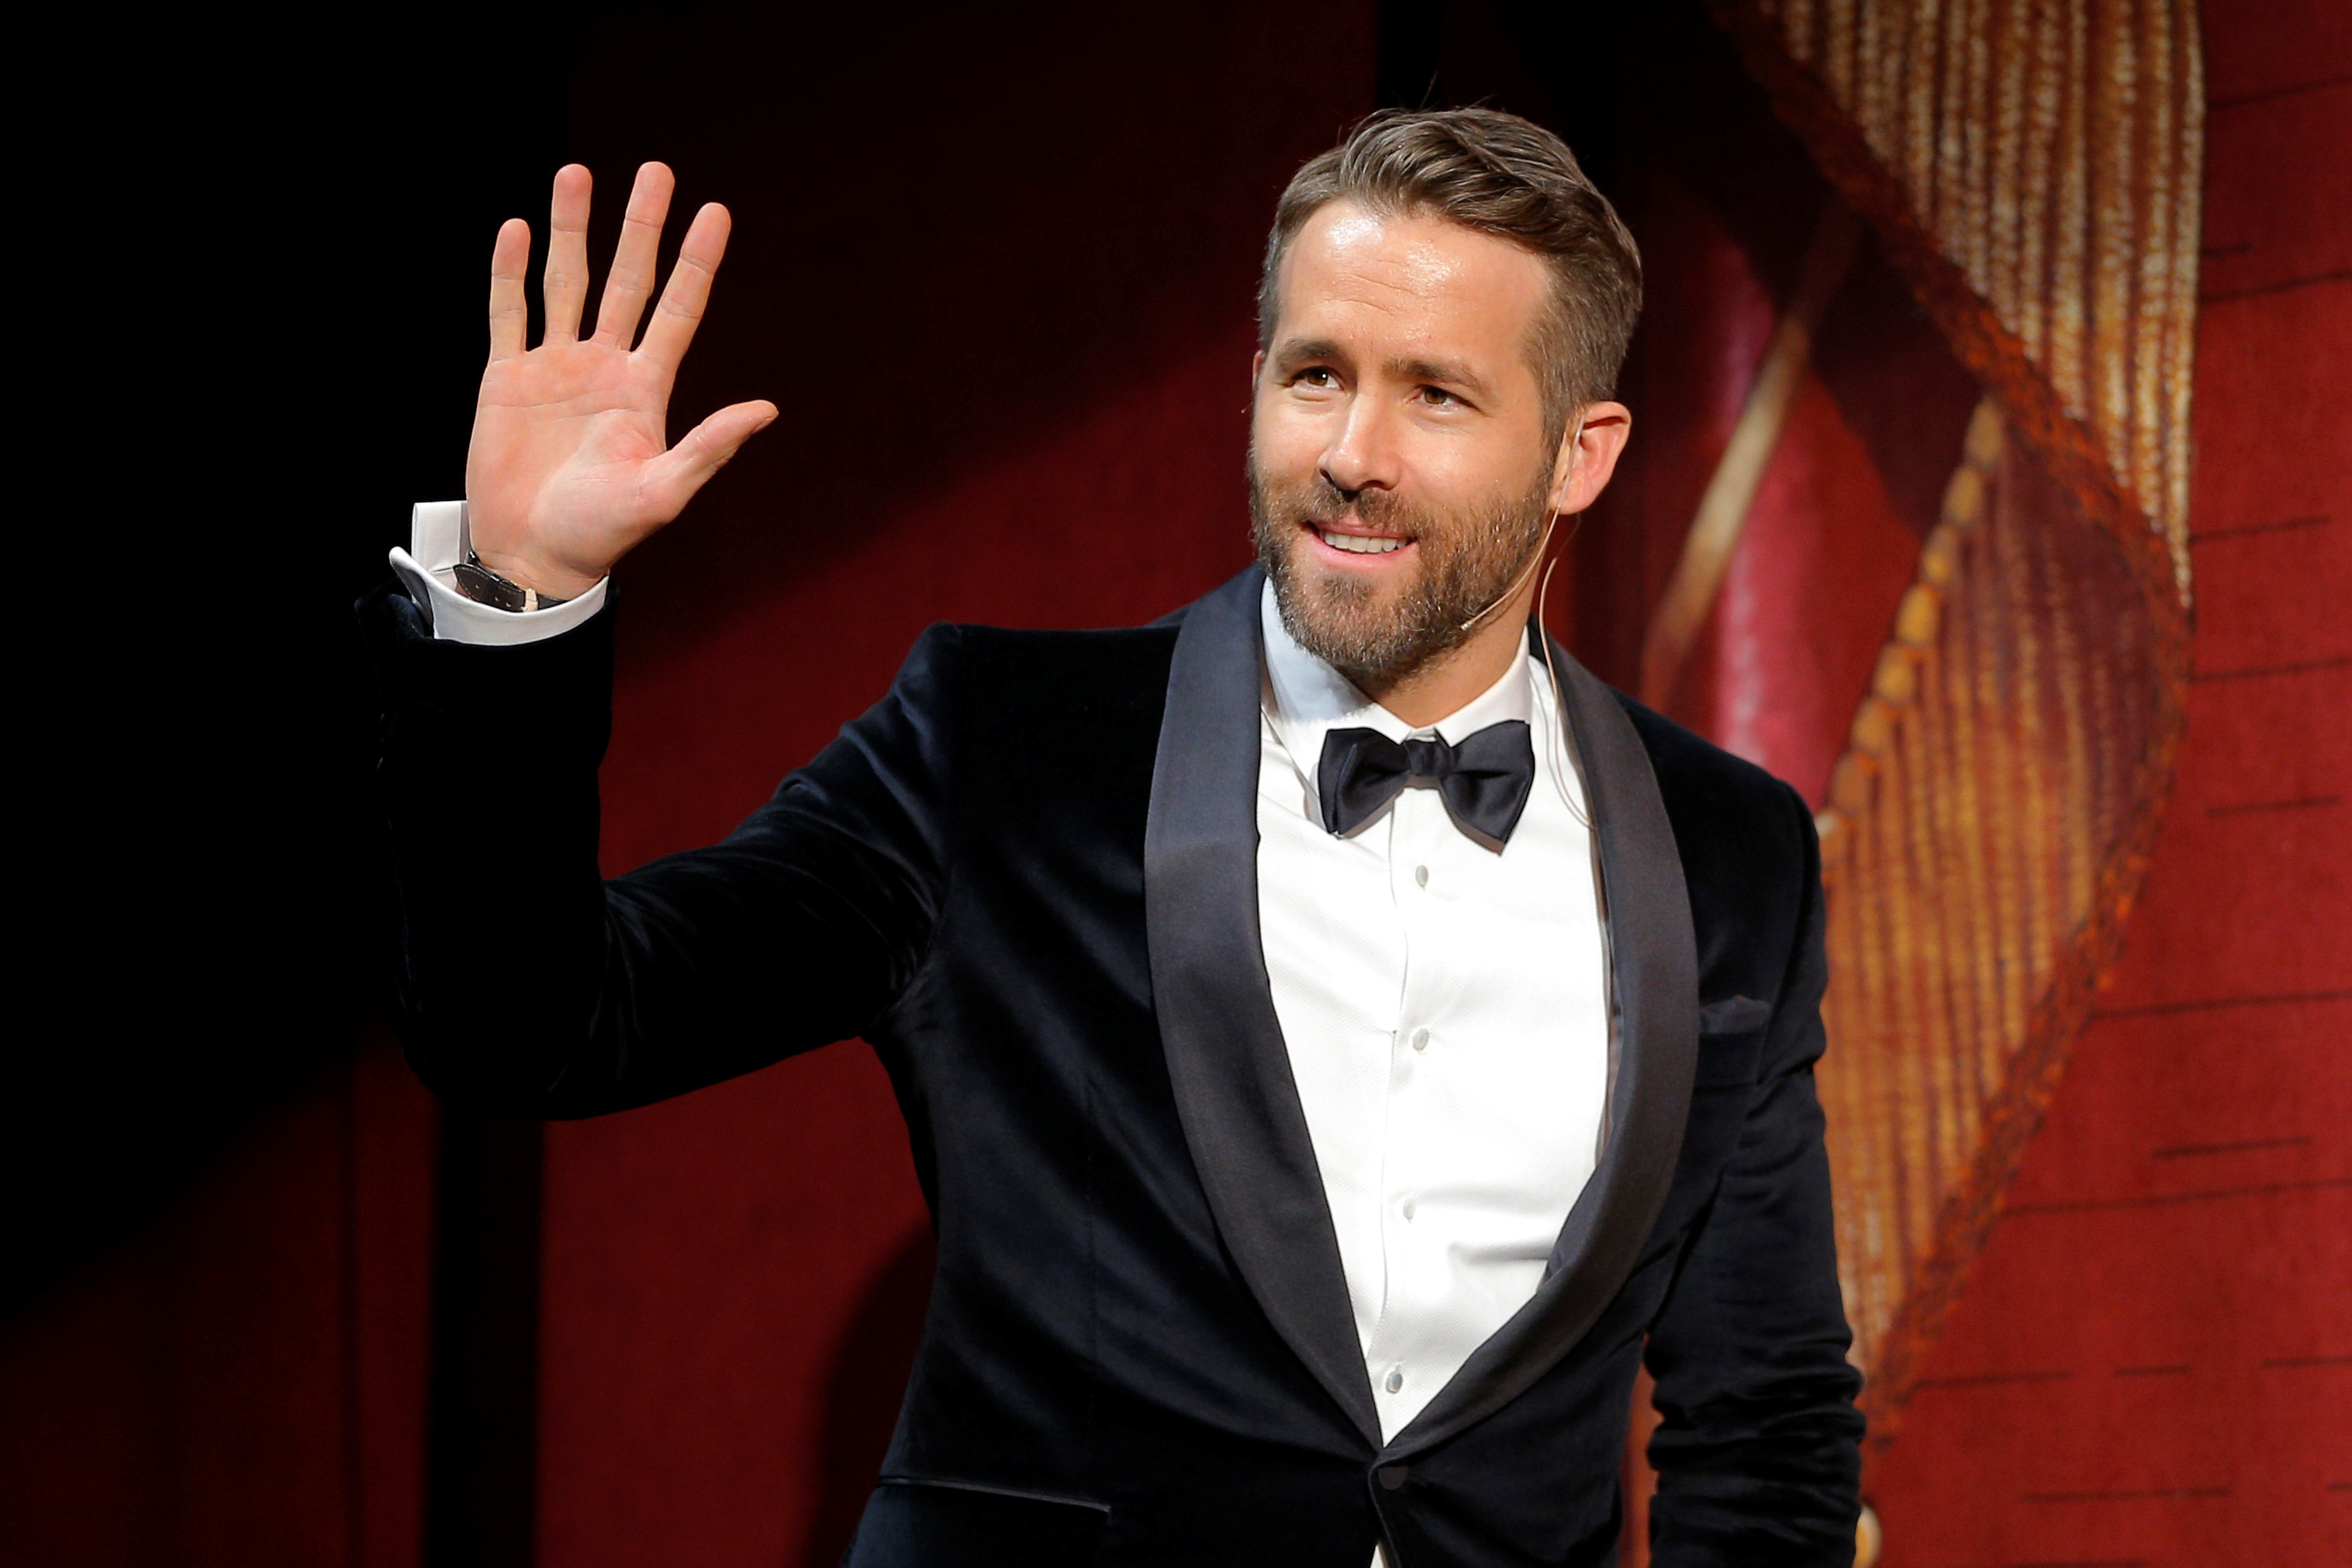 Actor Ryan Reynolds takes the stage to be honored as Hasty Pudding Theatricals Man of the Year at Harvard University in Cambridge